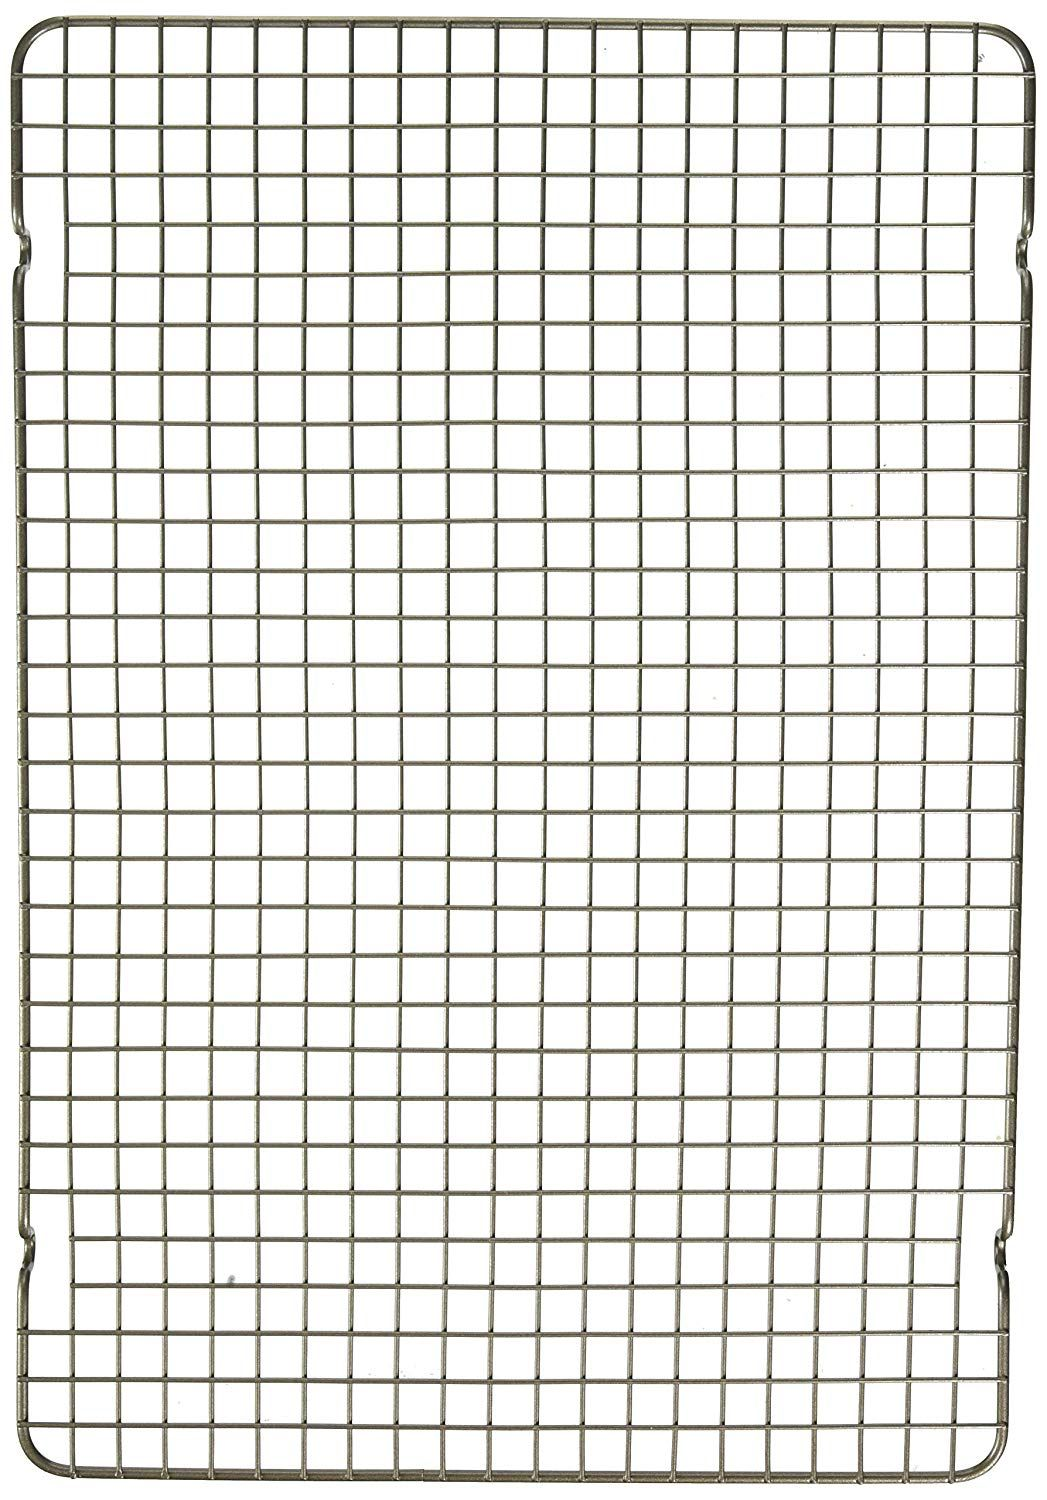 Nordic Ware Oven Safe Baking And Cooling Grid To View Further